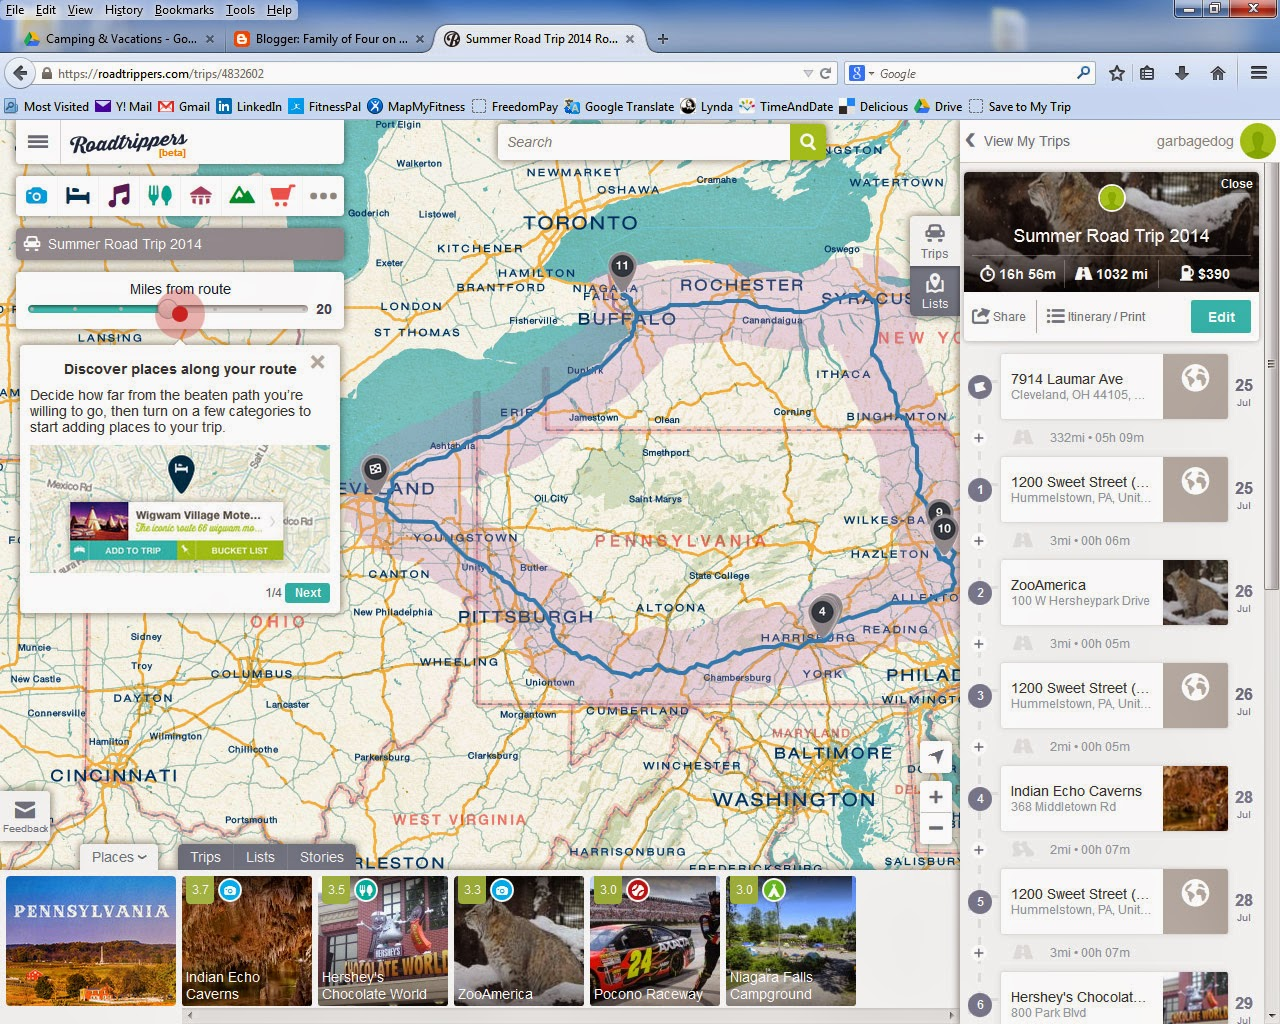 Road Trip Route Planner Map and Trip Guides Roadtrippers 932251     Road Trip Route Planner Map and Trip Guides Roadtrippers Trip Guides  Roadtrippers Support Access blogroadtripperscom Road Trip Route Planner Map